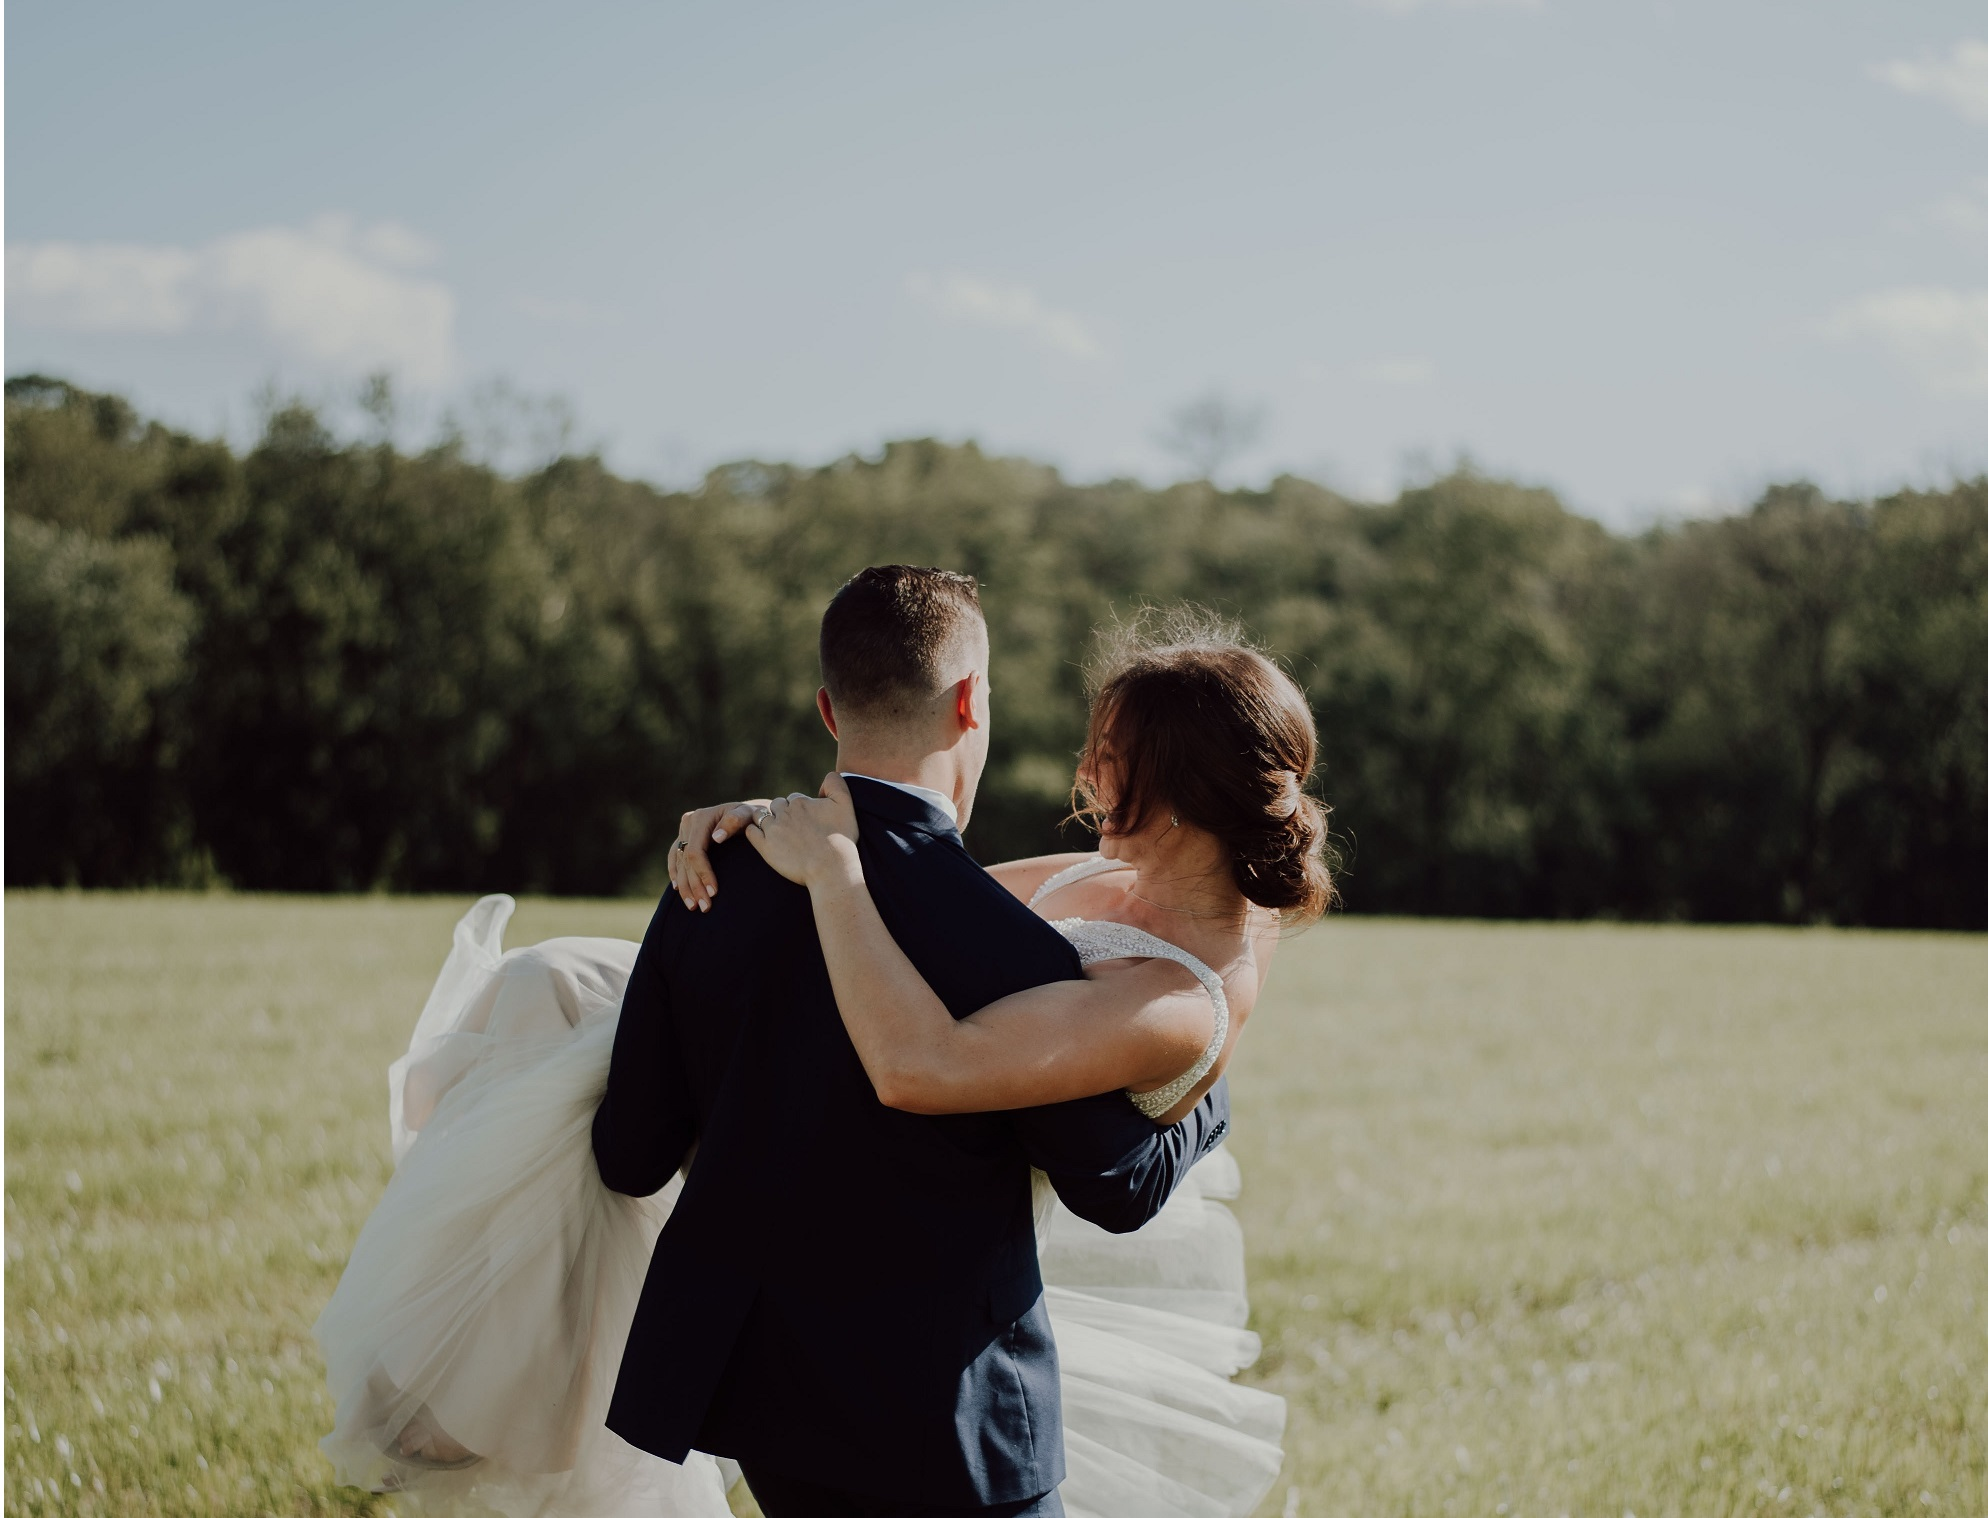 being the second wife doesn't make you any less